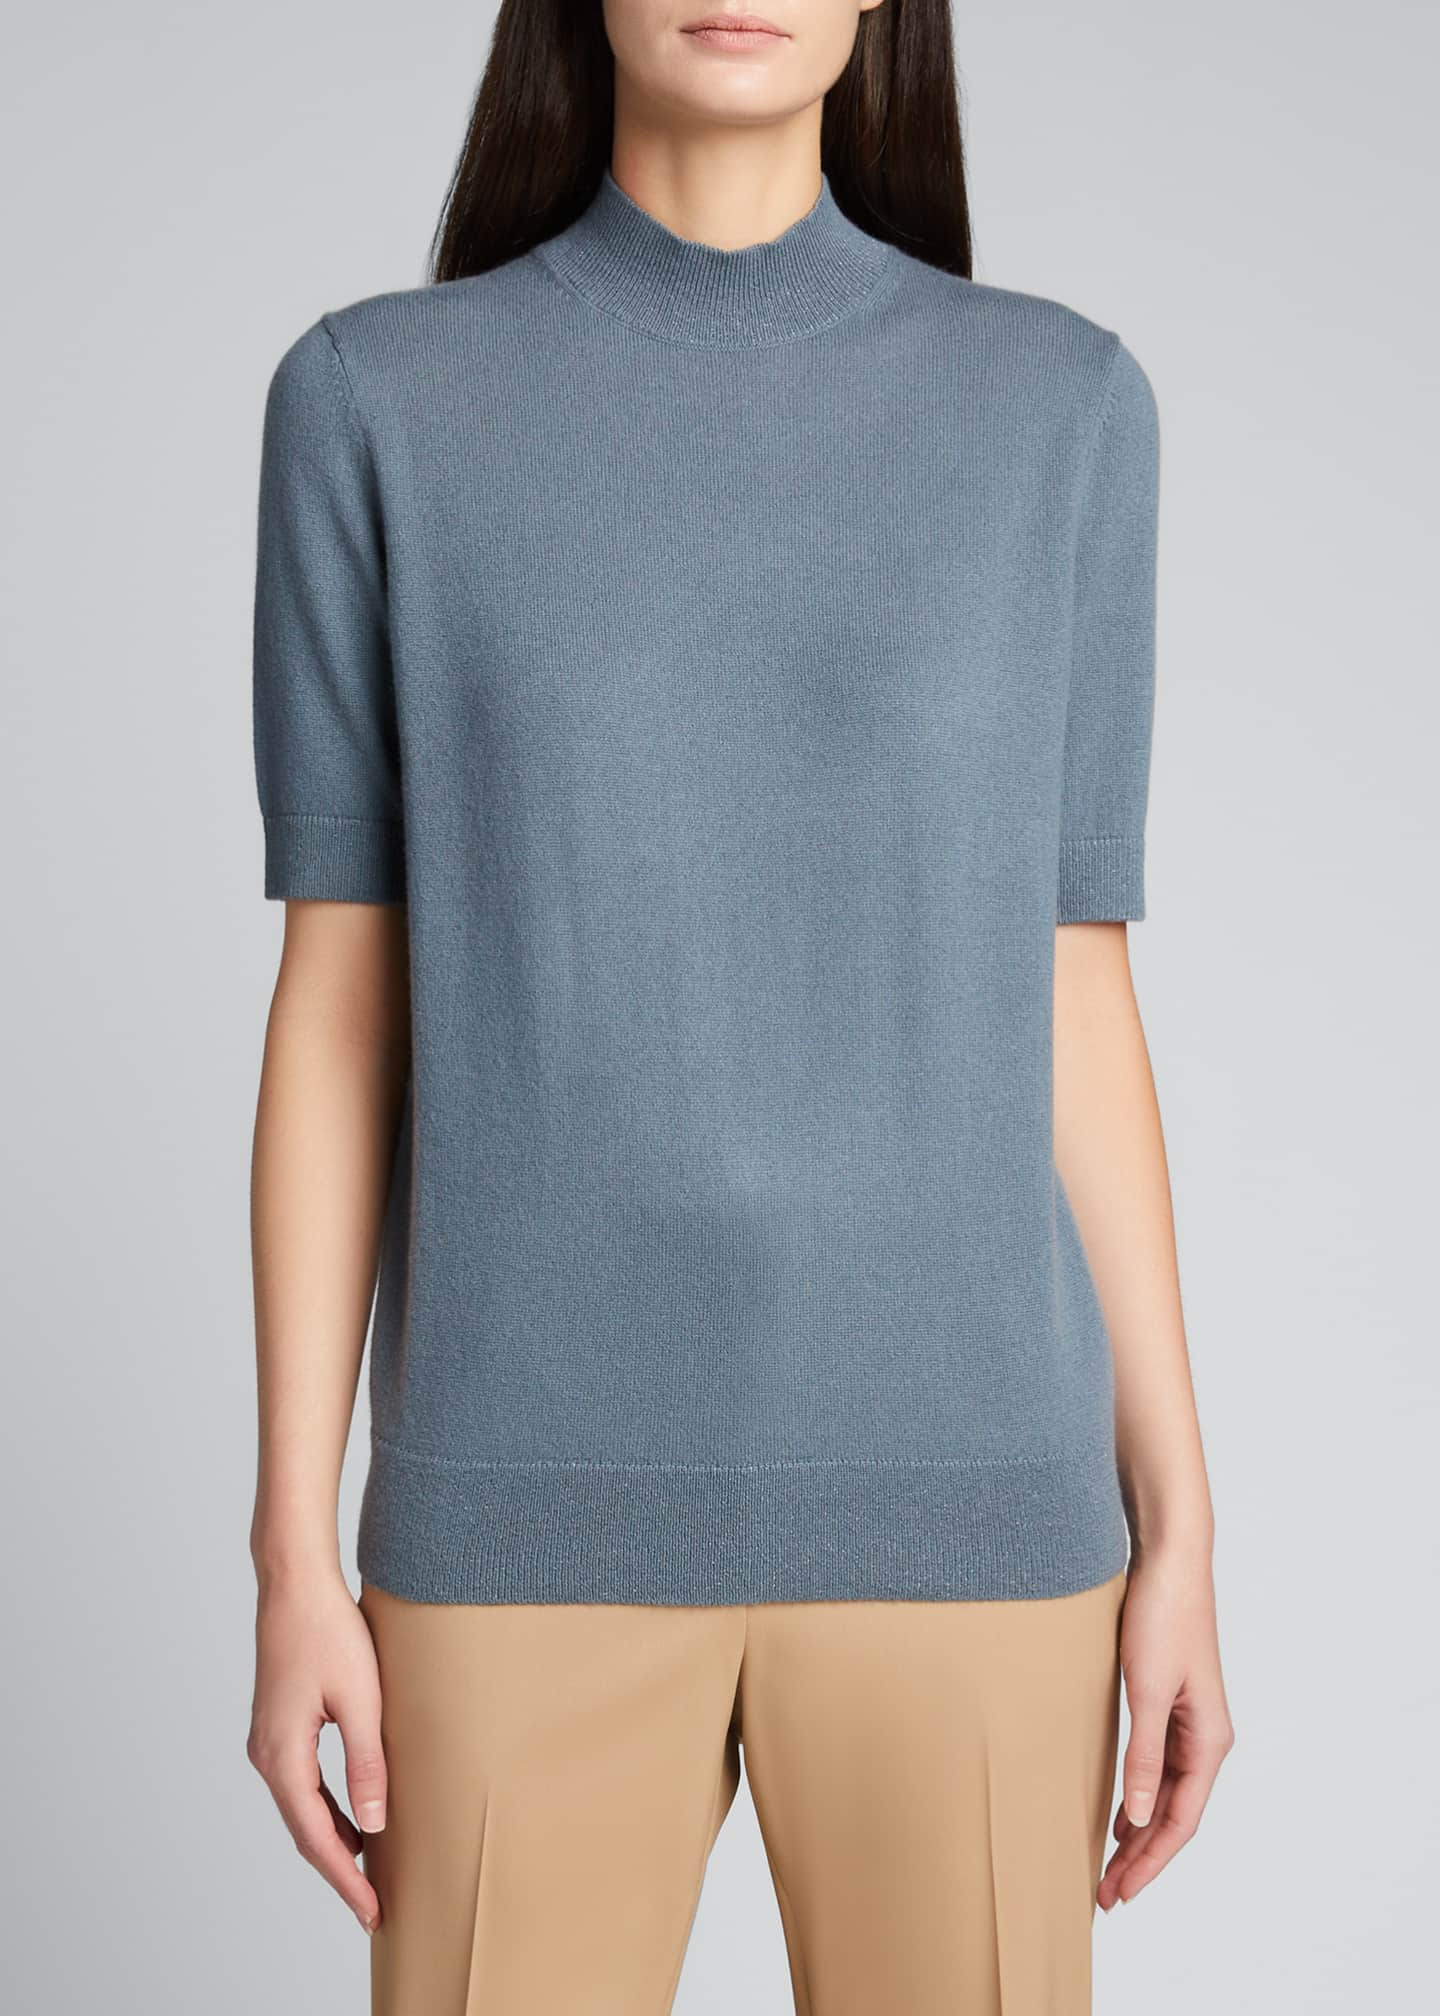 Image 3 of 5: Cashmere Mock-Neck Sweater with Metallic